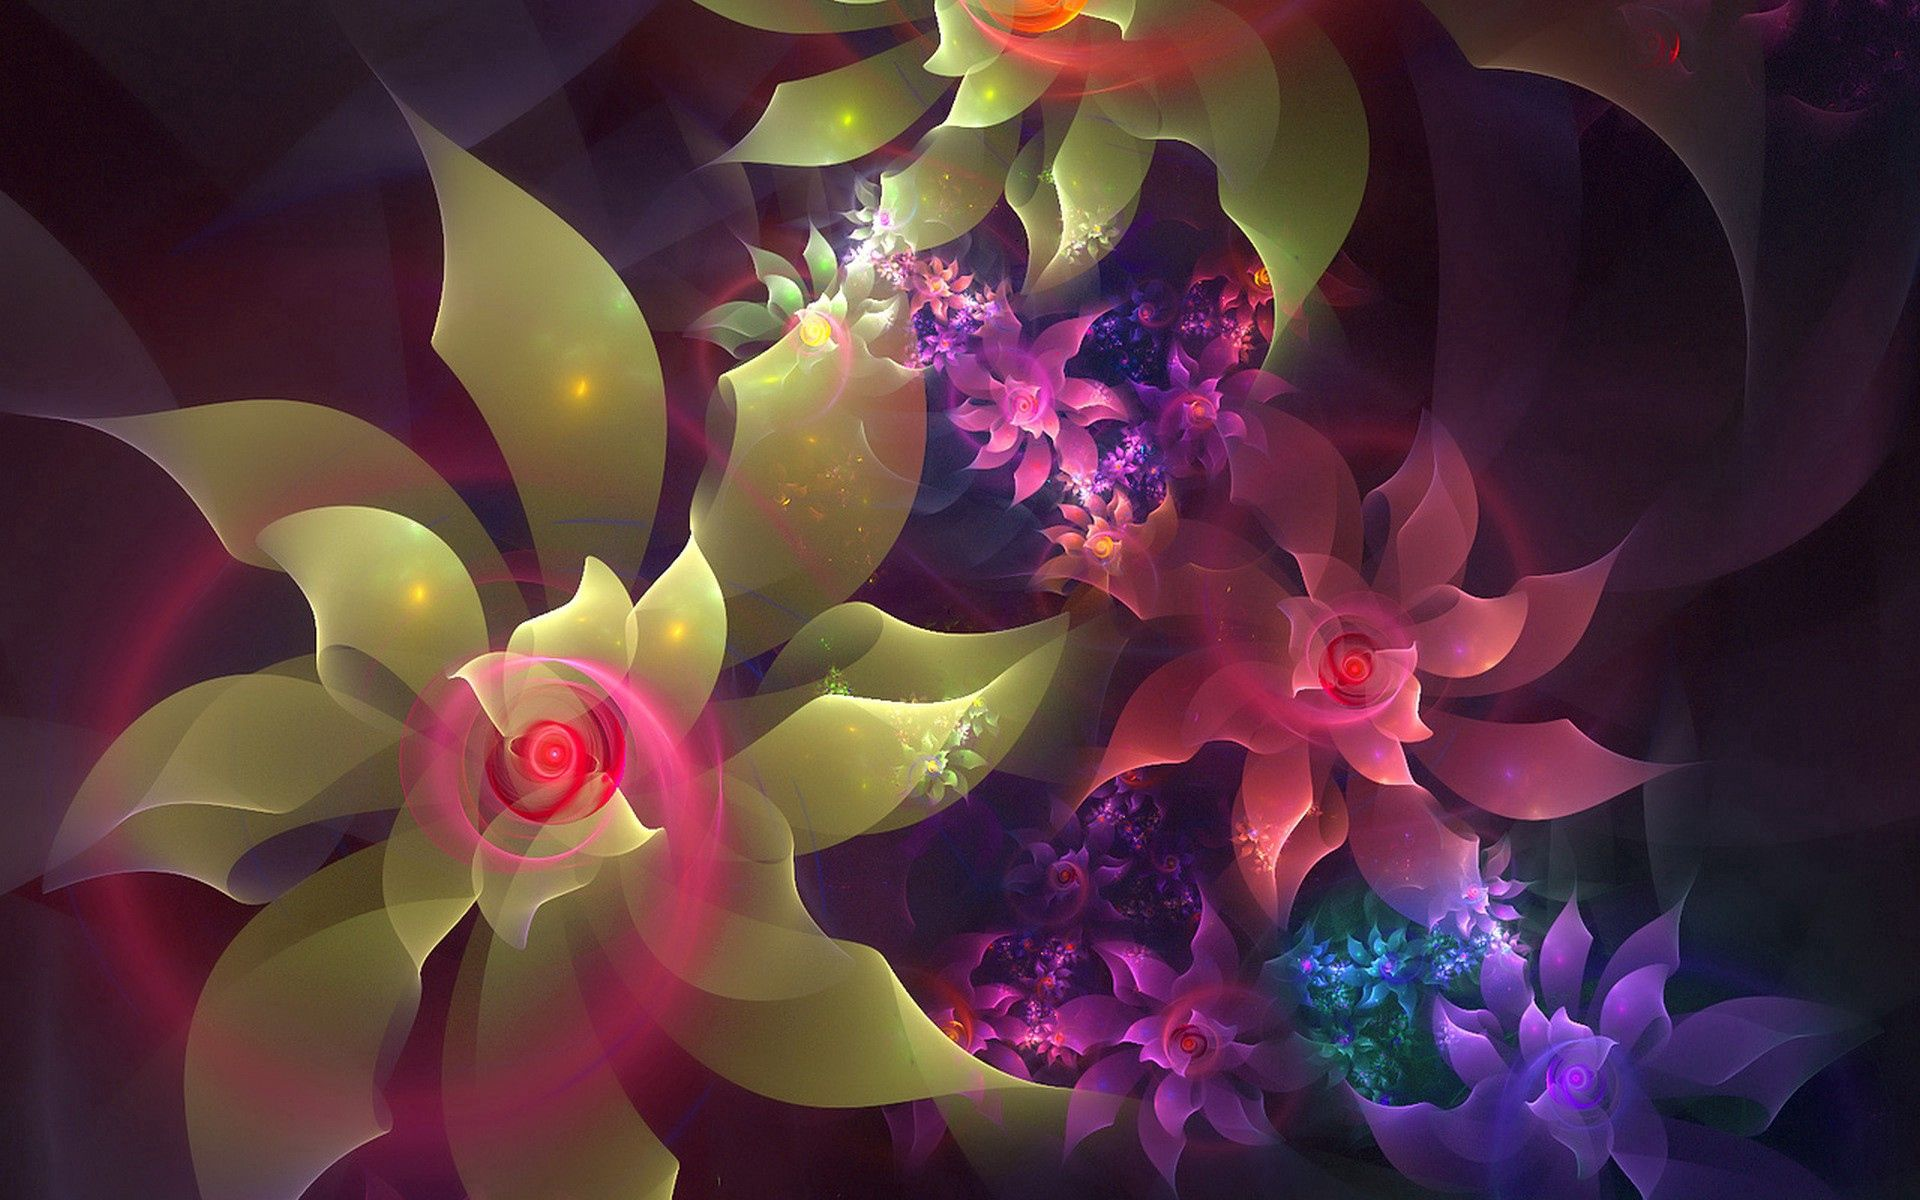 115224 download wallpaper Abstract, Fractal, Lines, Color, Flowers, Patterns screensavers and pictures for free